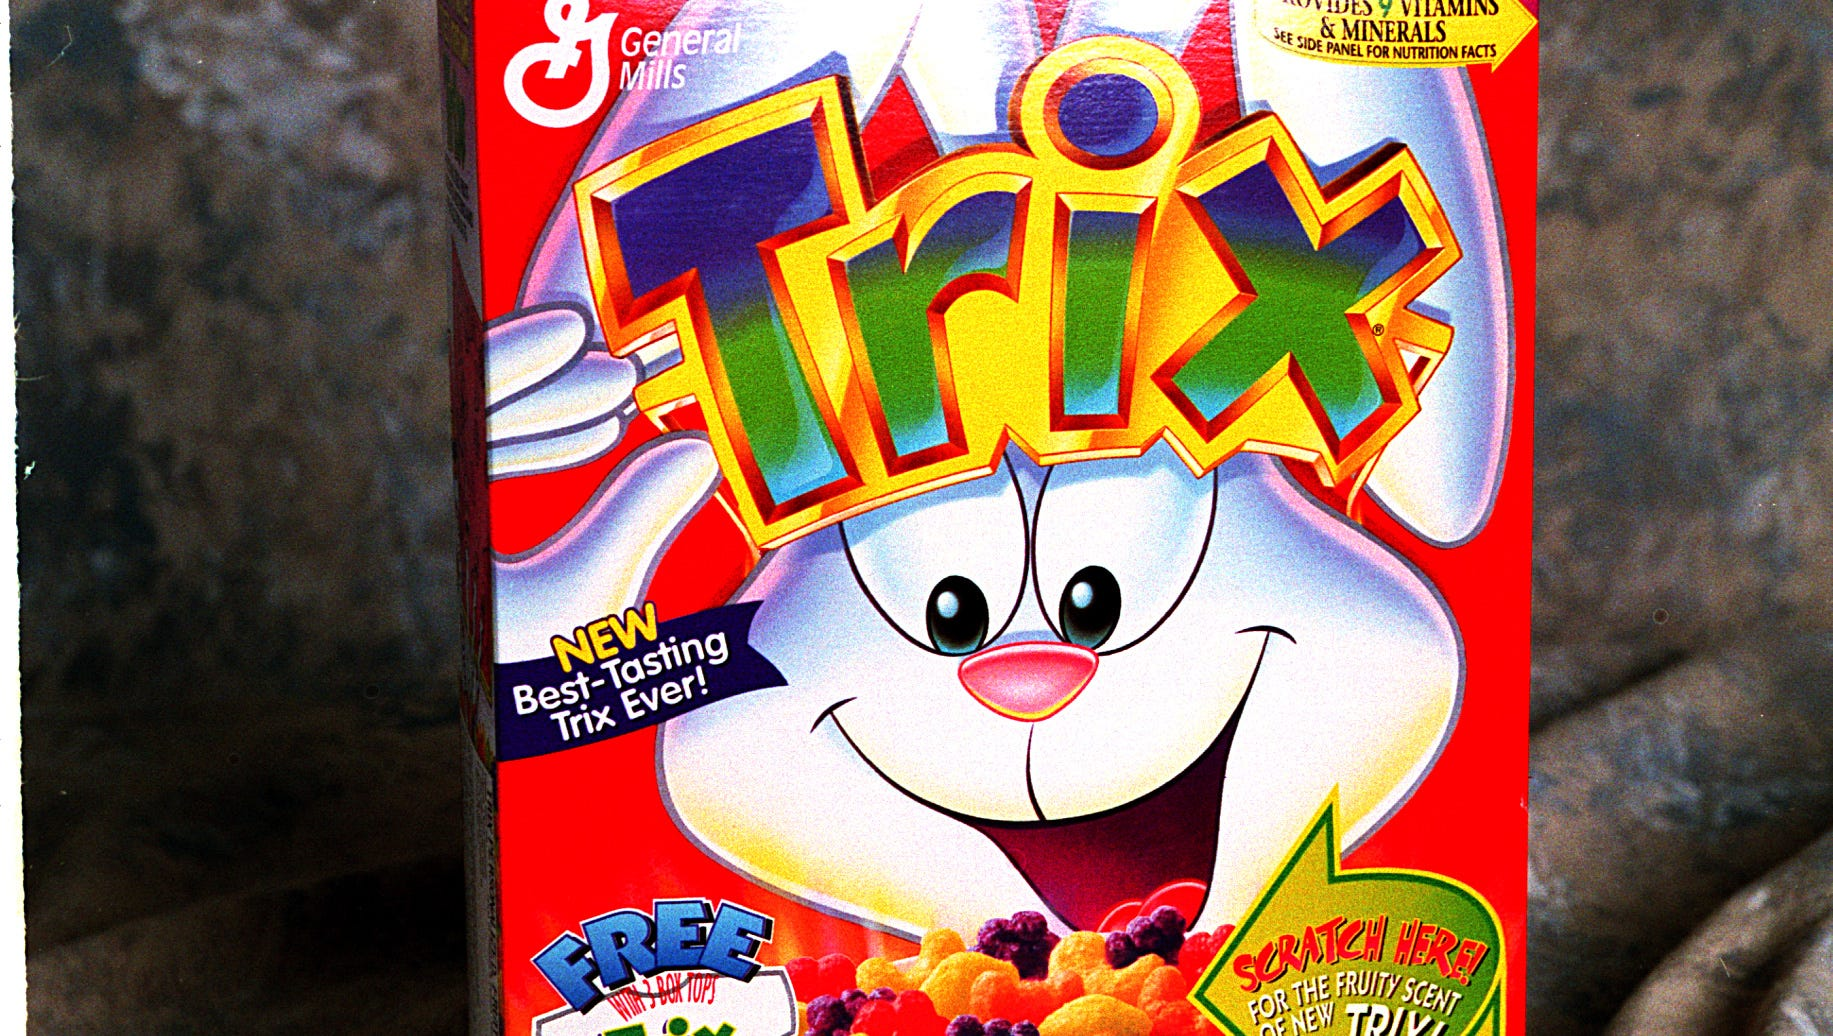 Trix cereal returns to artificial